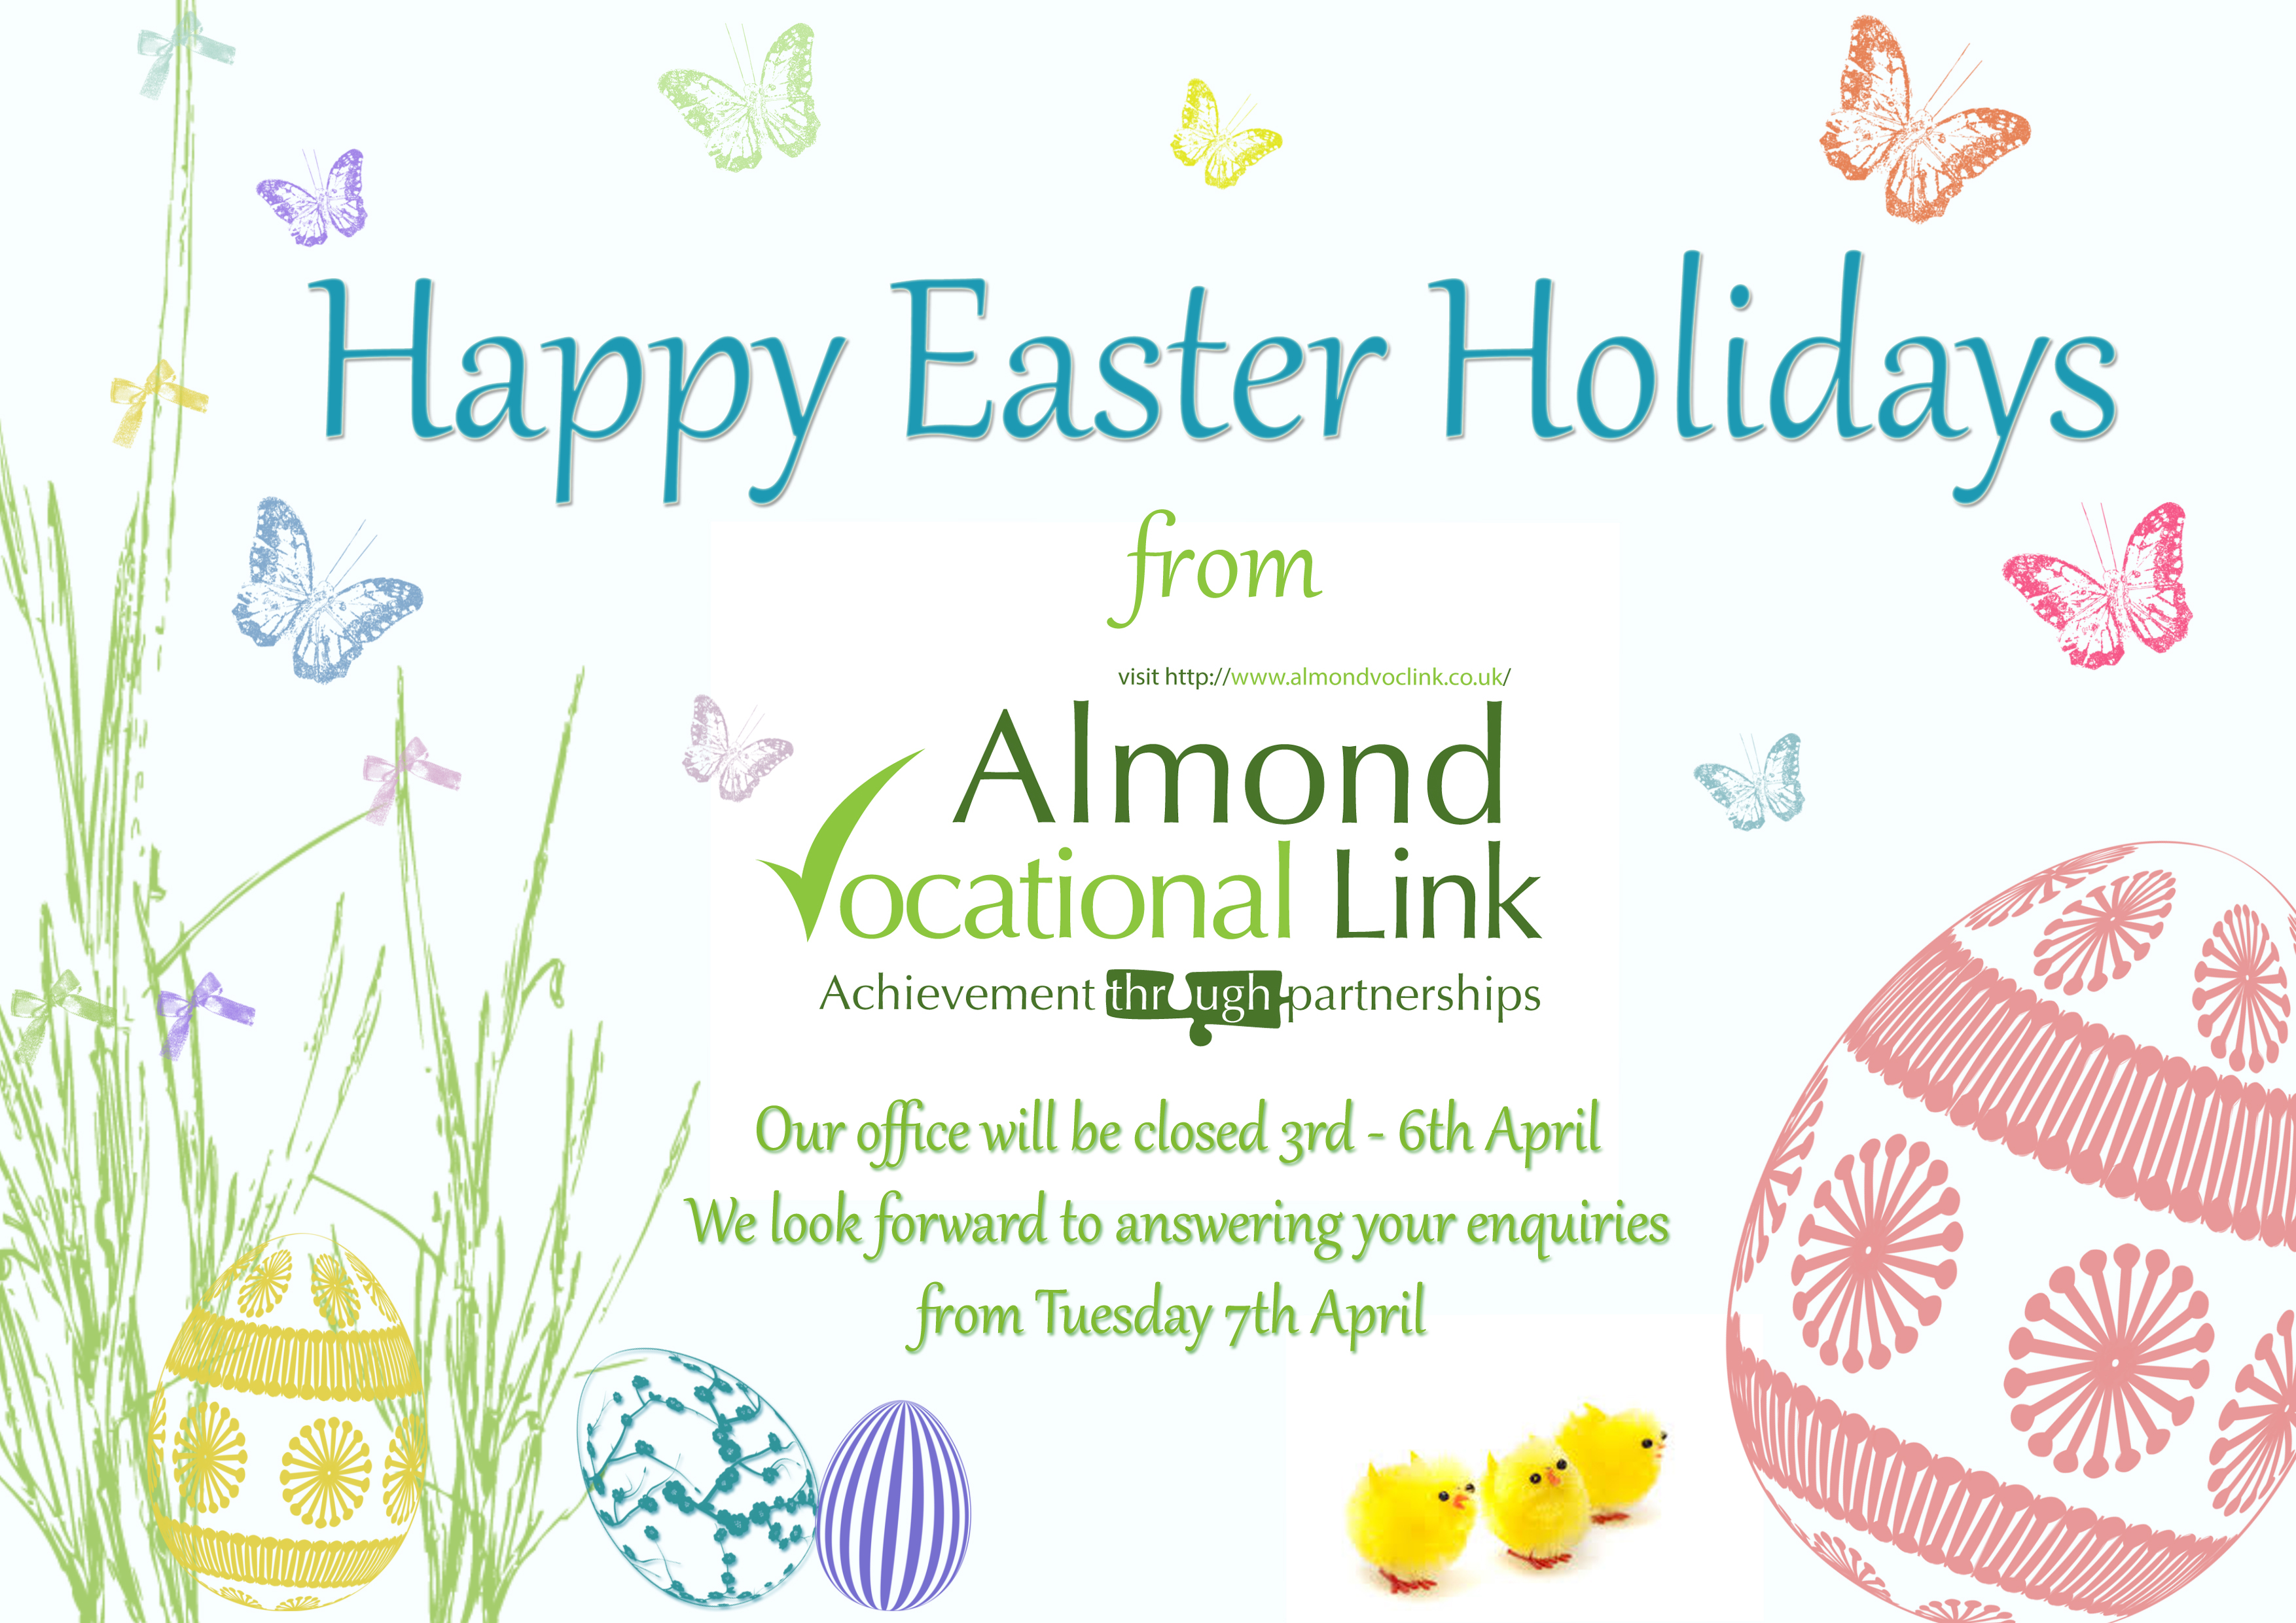 Happy Easter Holidays from Almond Vocational Link  2015